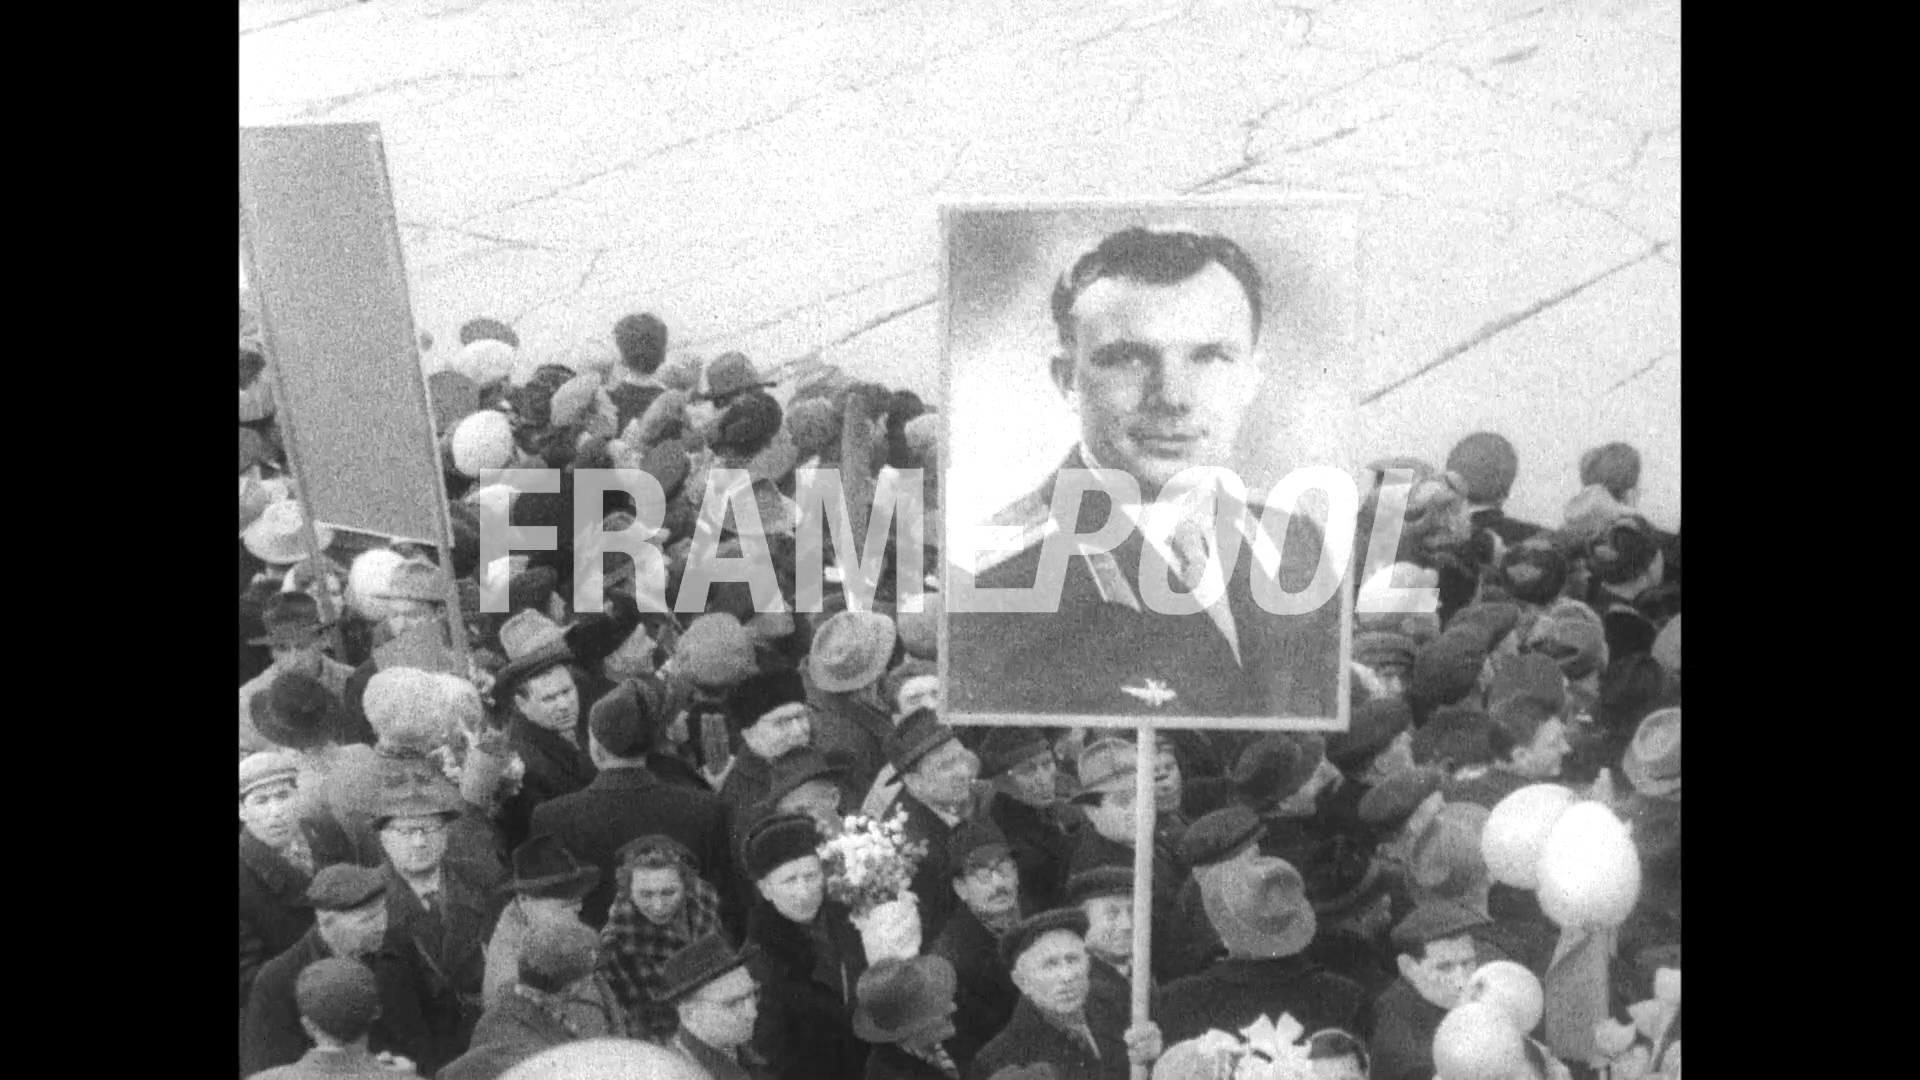 1961, April: First Pictures of Yuri Gagarin